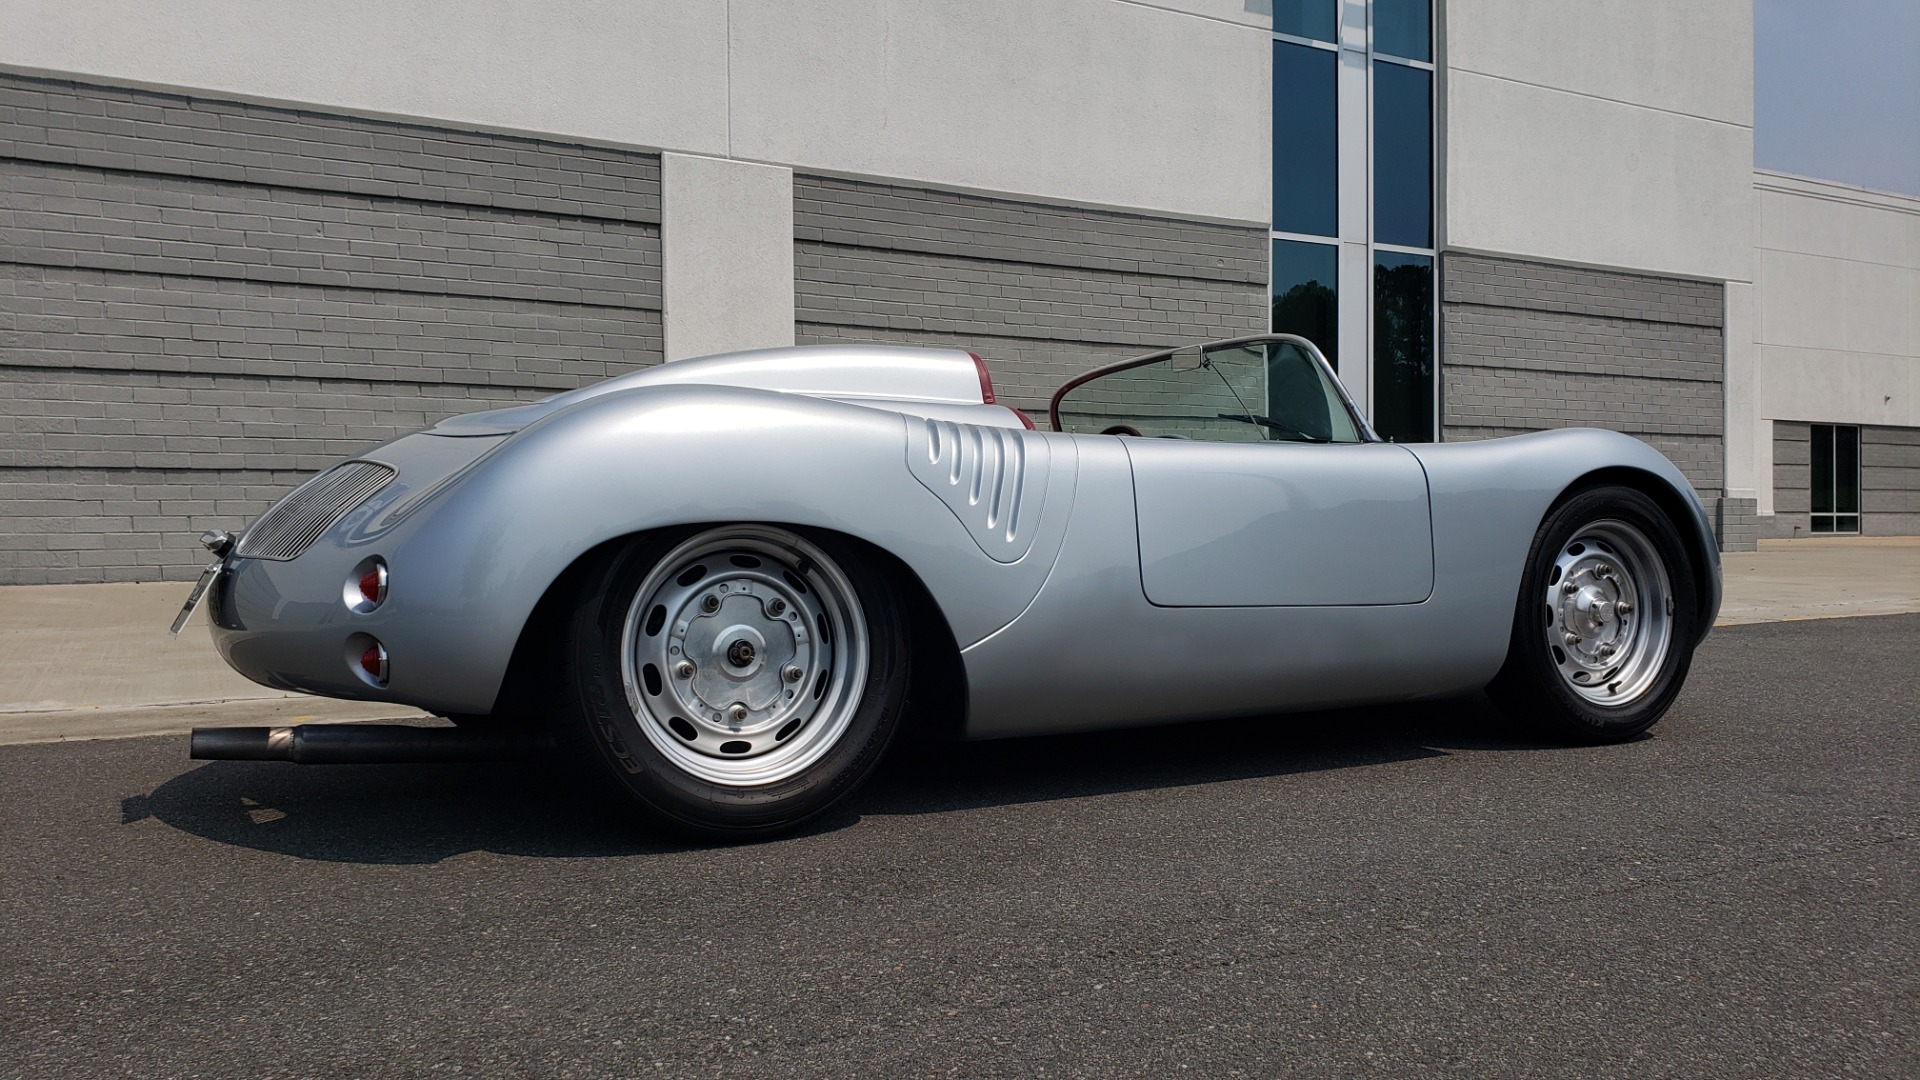 Used 1960 Porsche 718 RSK SPYDER REPLICA / 2275CC W/44MM WEBER (160HP) / 4-SPD MANUAL for sale $39,999 at Formula Imports in Charlotte NC 28227 6